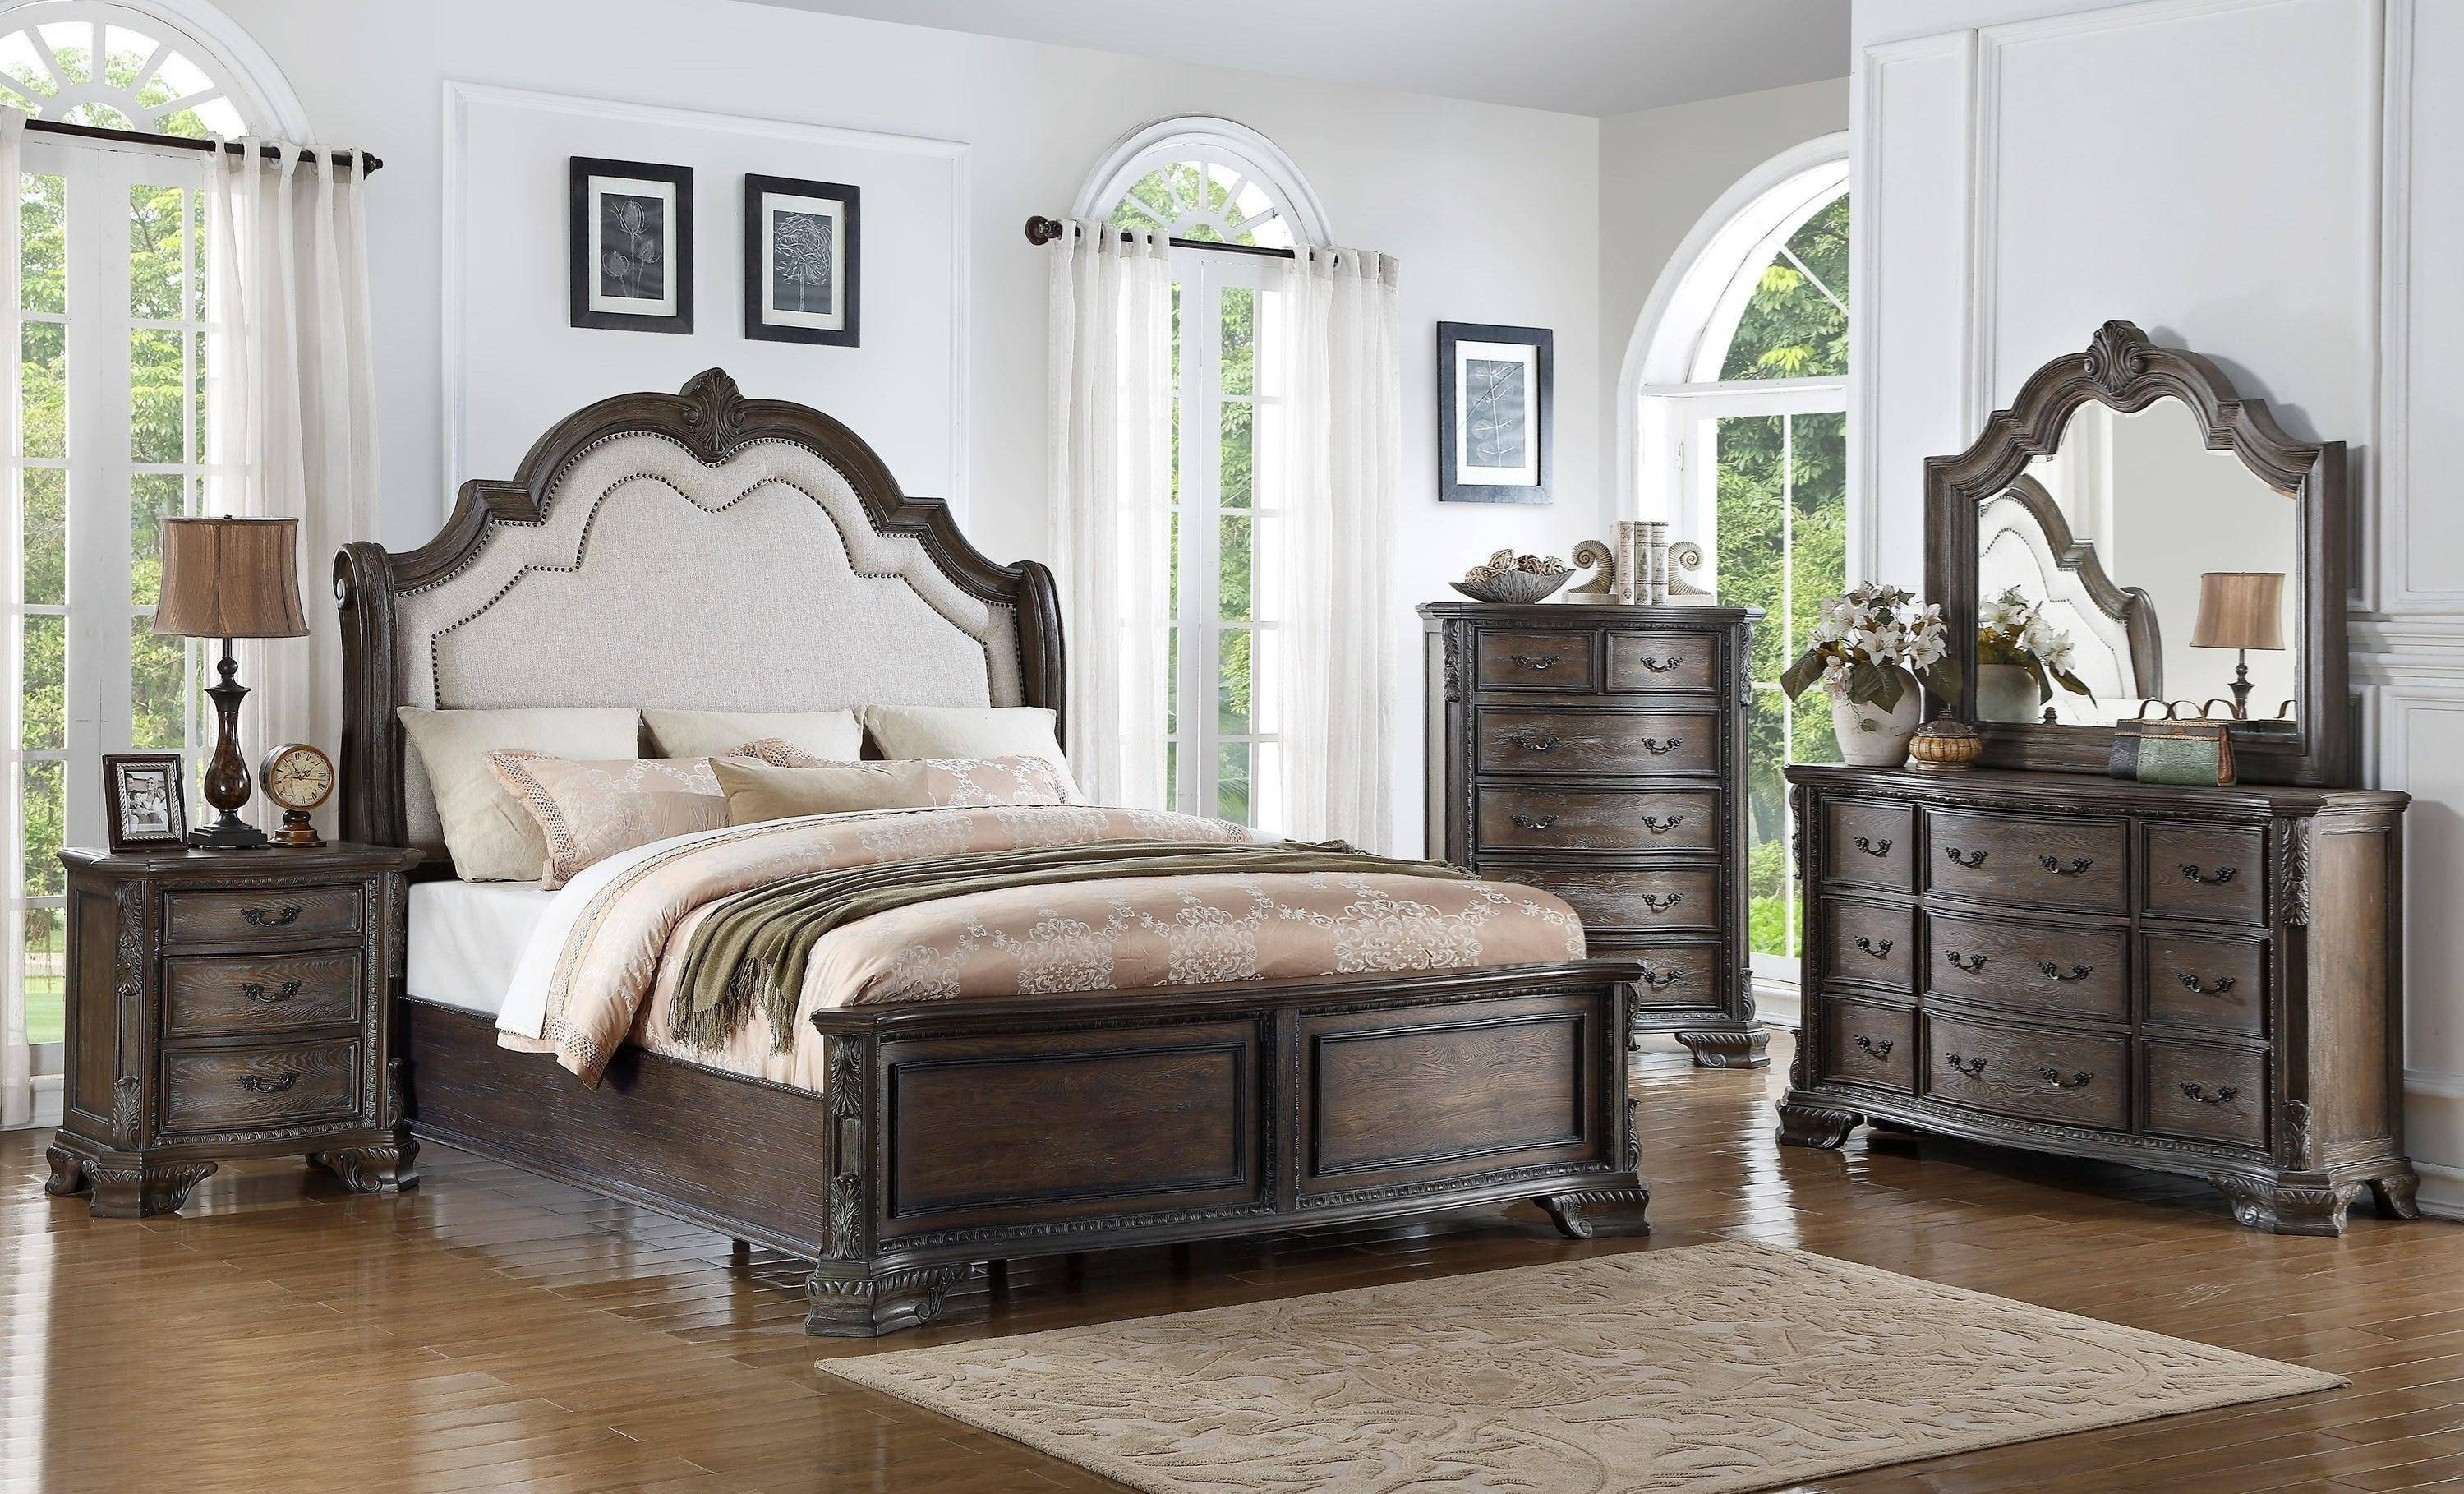 King Size Bedroom Set Cheap Elegant Crown Mark B1120 Sheffield Queen Panel Bed In Gray Fabric